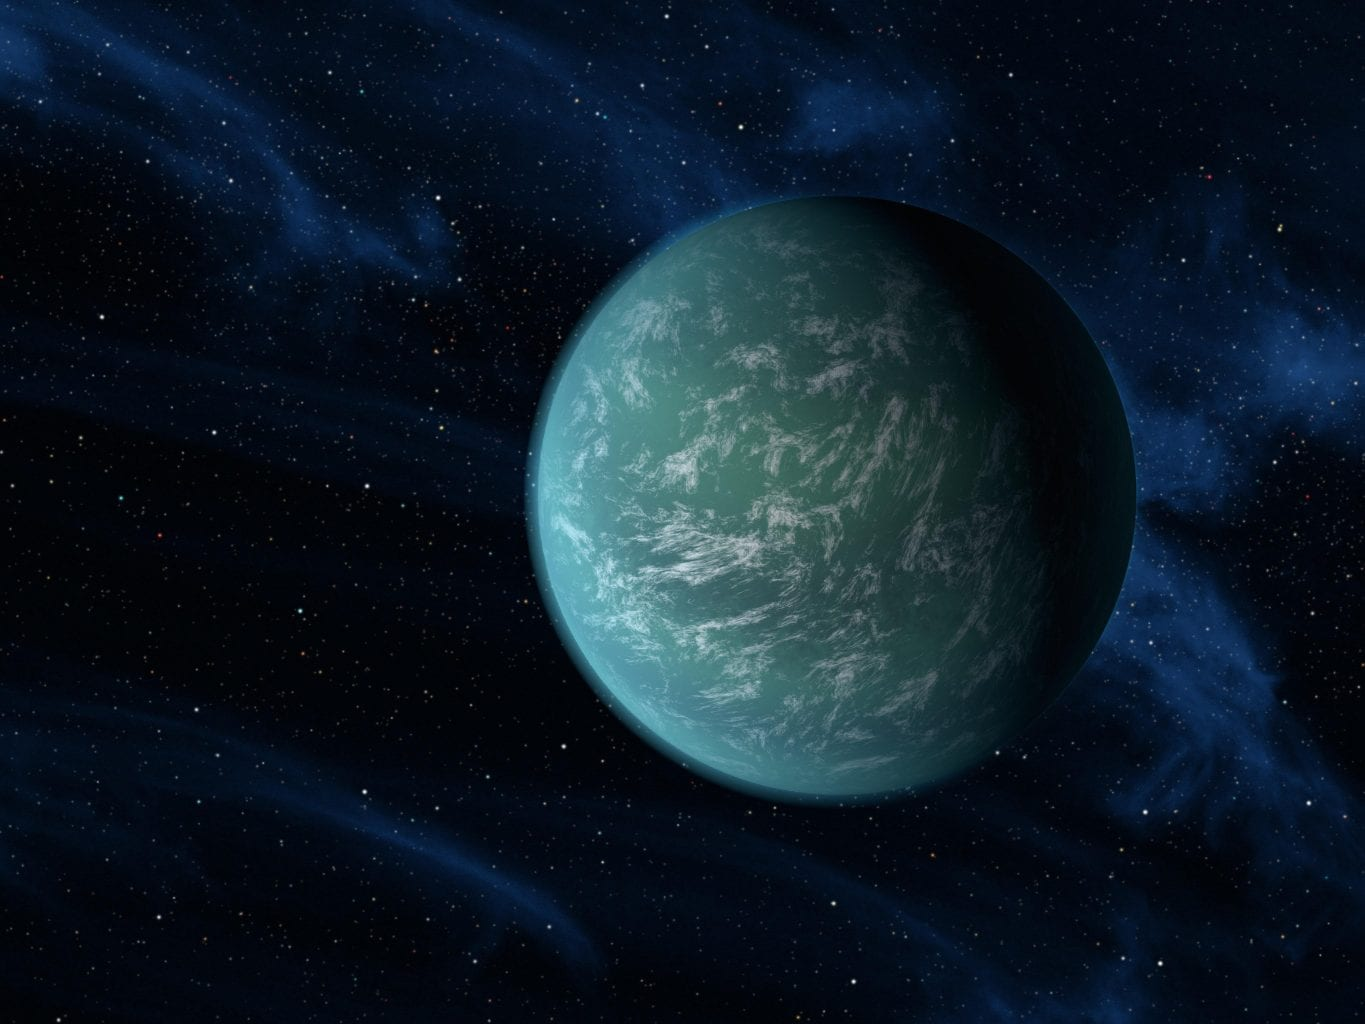 Exoplanet Kepler-22b, a potentially rocky world filled with oceans, as seen by the artist. Credit: NASA/Ames/JPL-Caltech